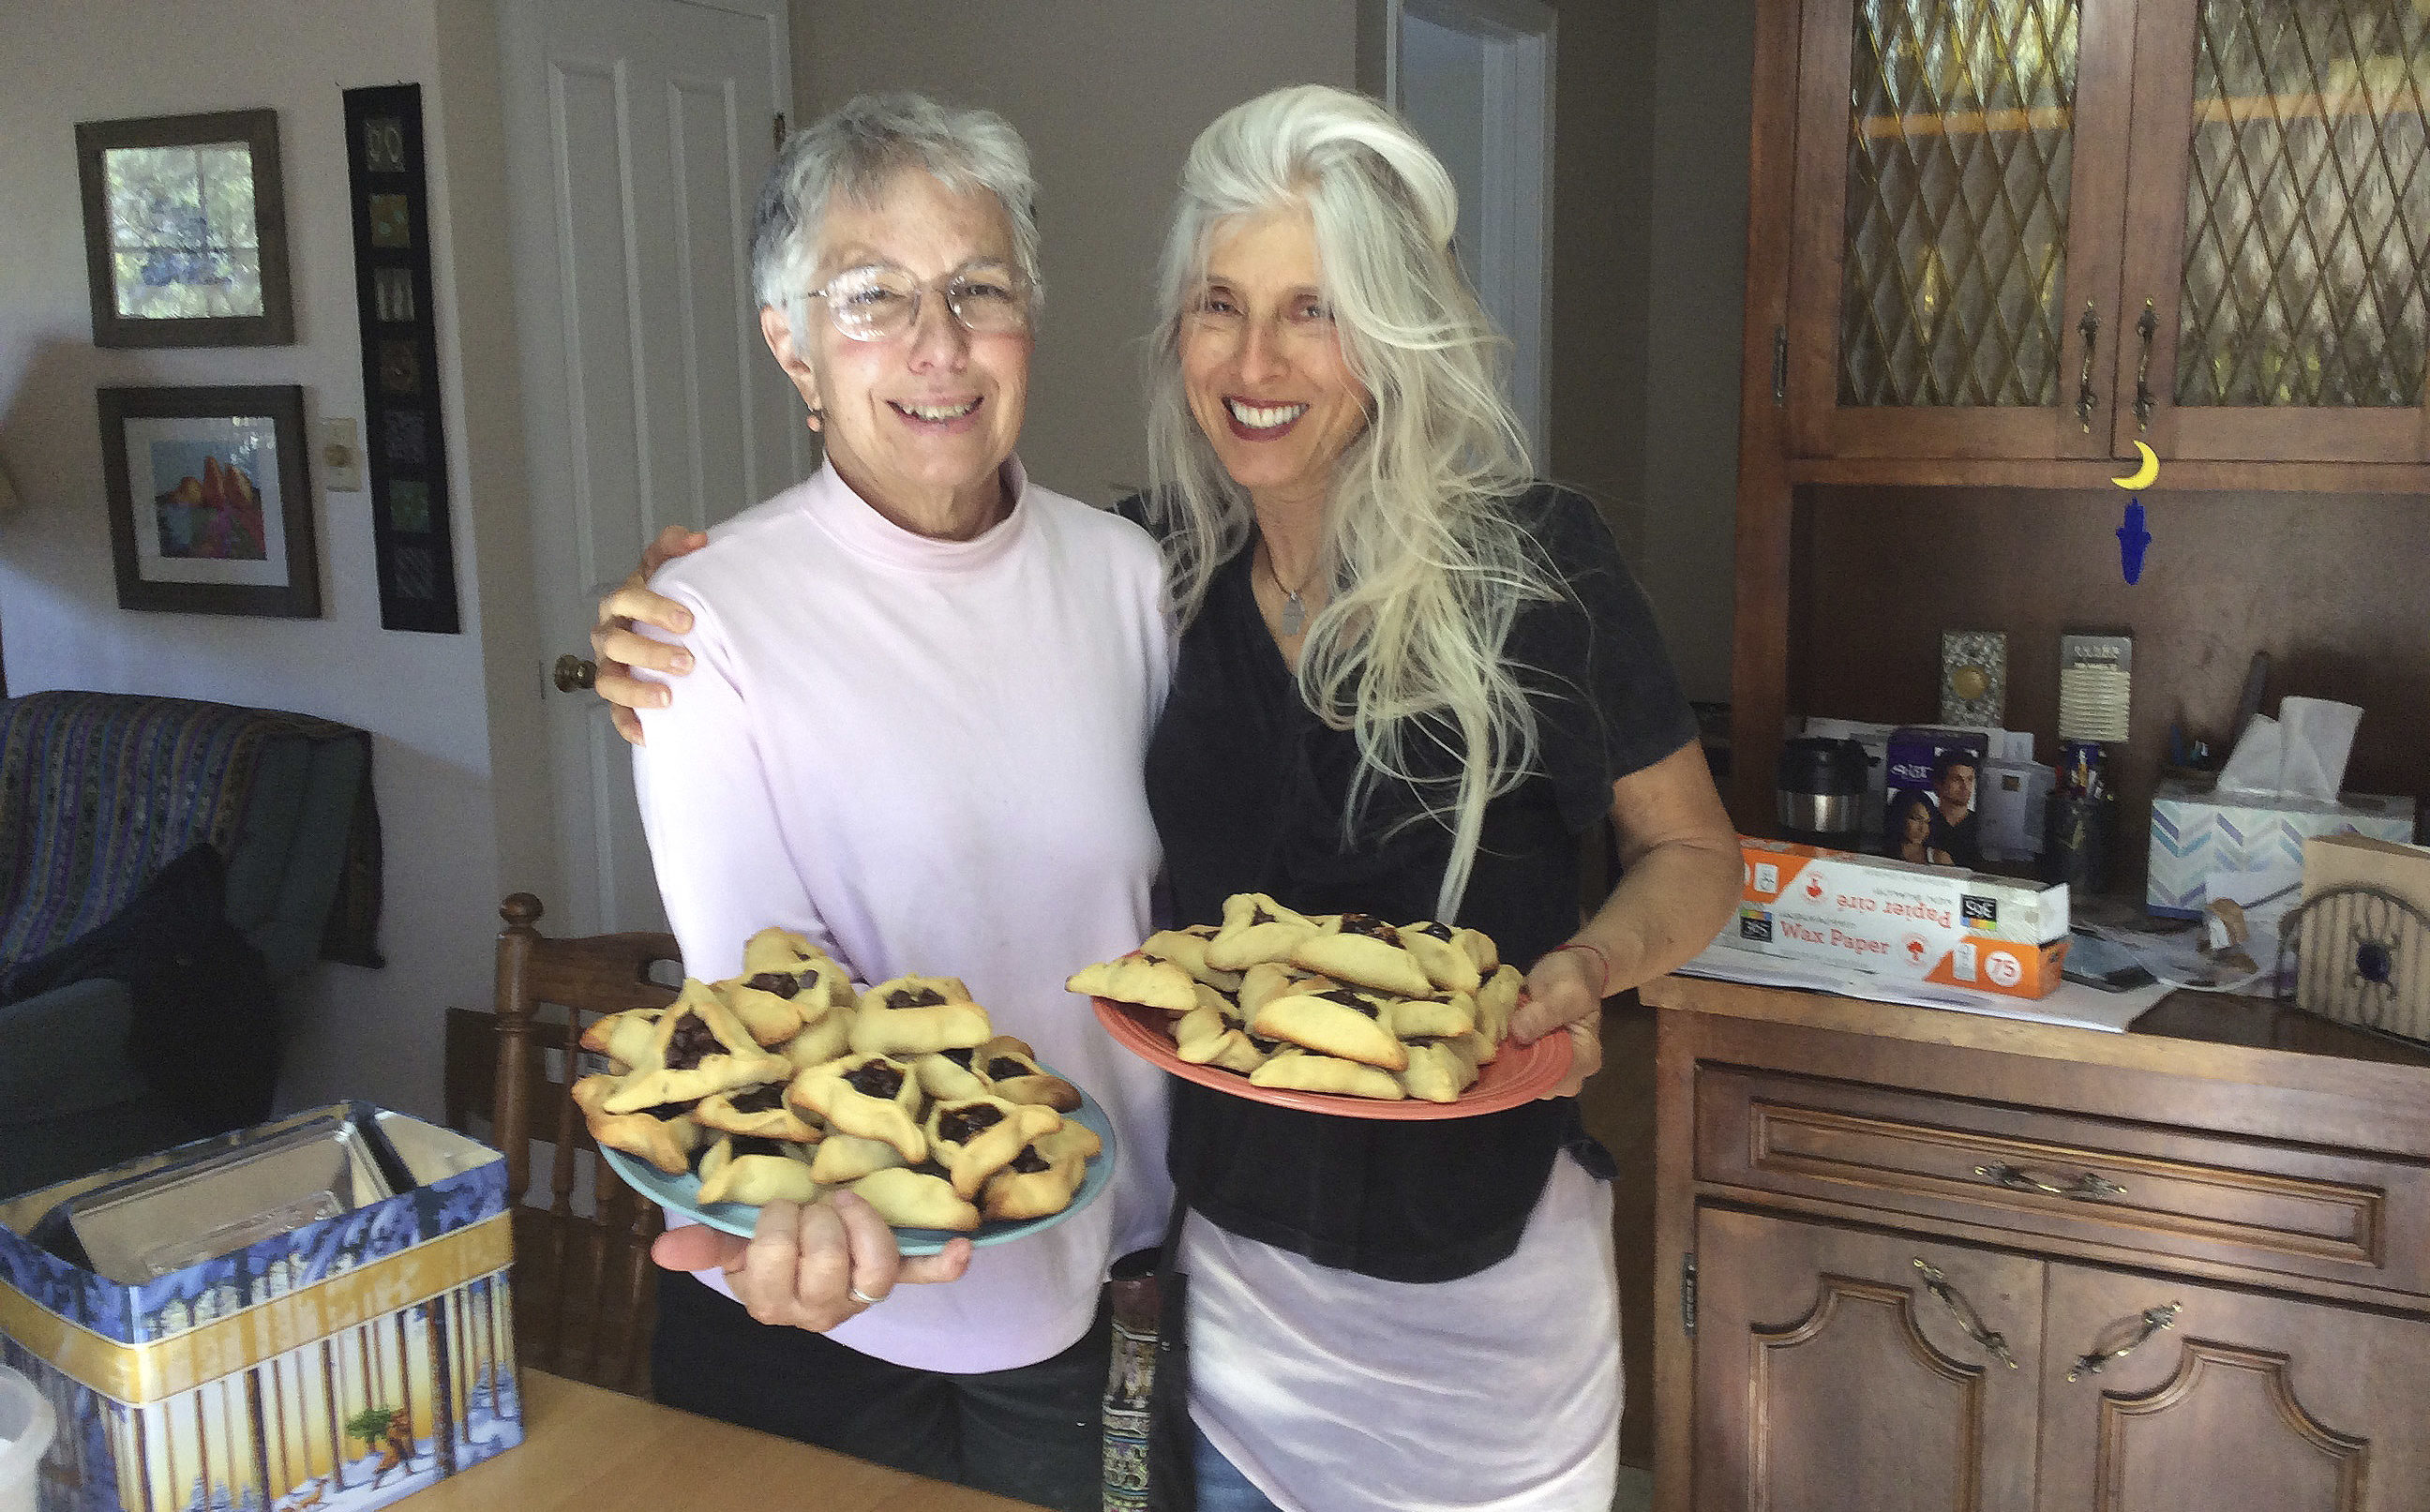 Deana Abramowitz (left) and Miriam Wald baking hamantaschen in 2016 (Photo/Wendy Cohen)